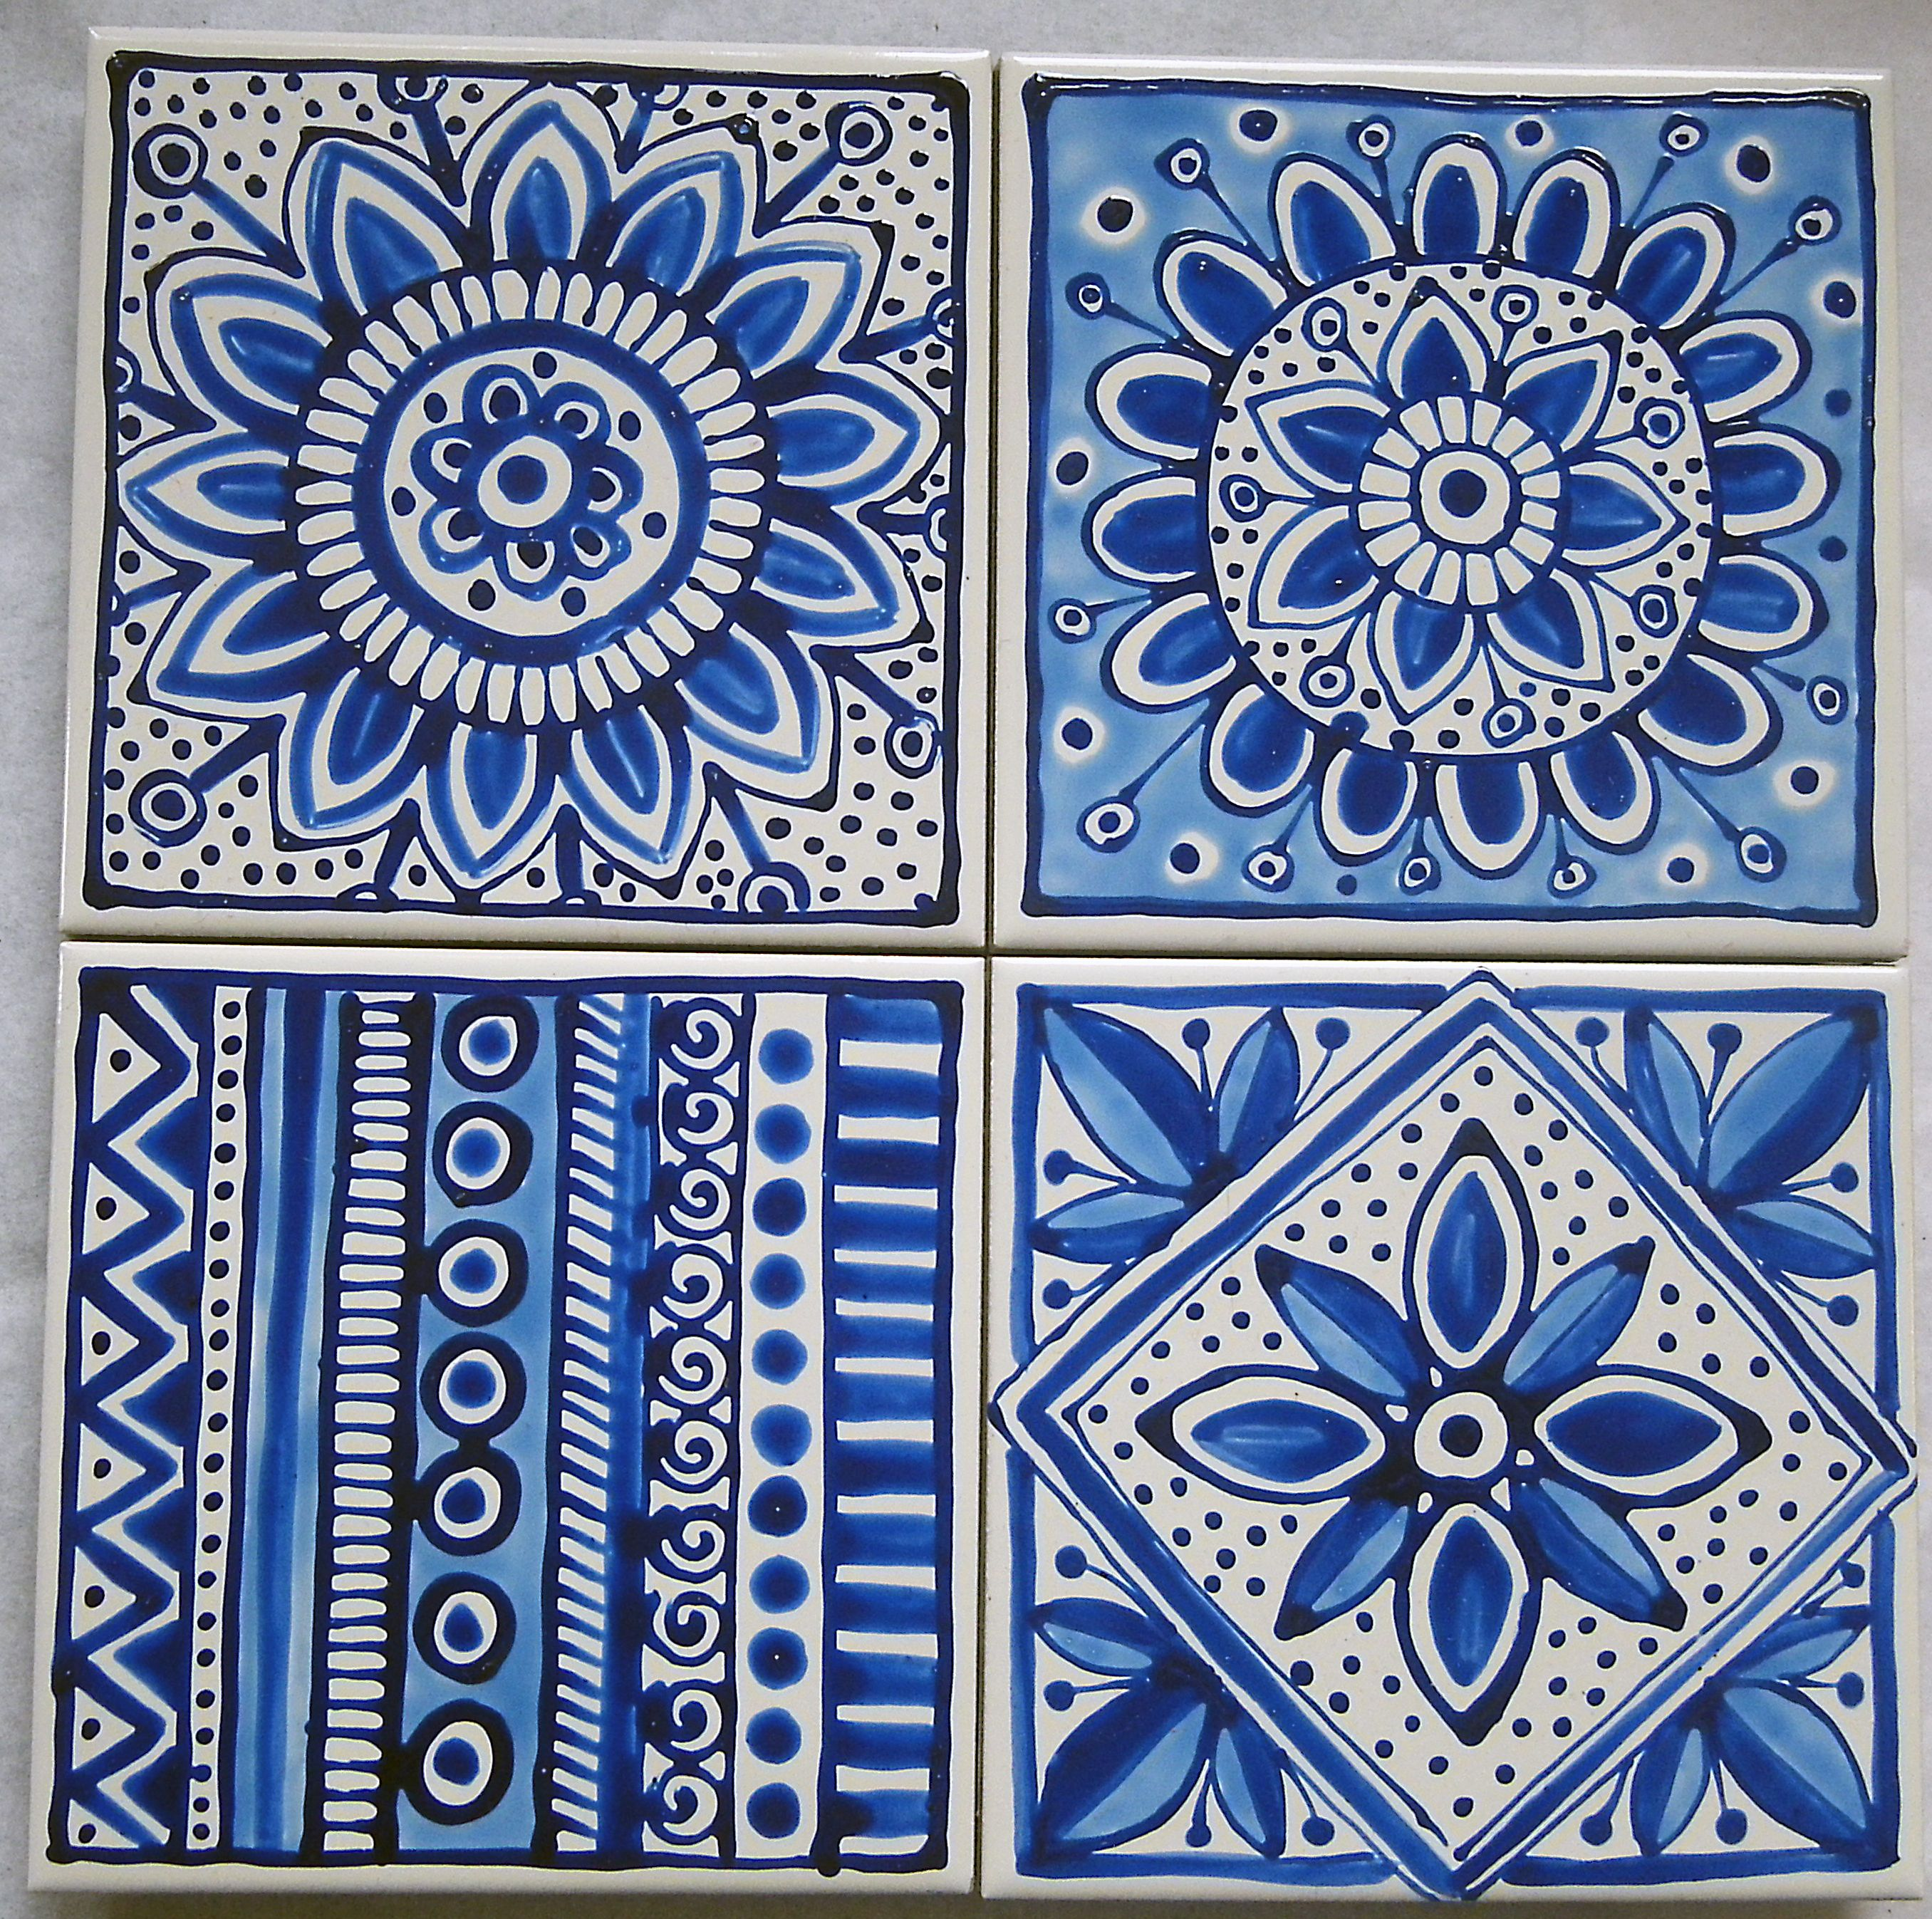 Delft inspired blue and white ceramic tile coasters www delft inspired blue and white ceramic tile coasters jocelynproustdesigns dailygadgetfo Choice Image